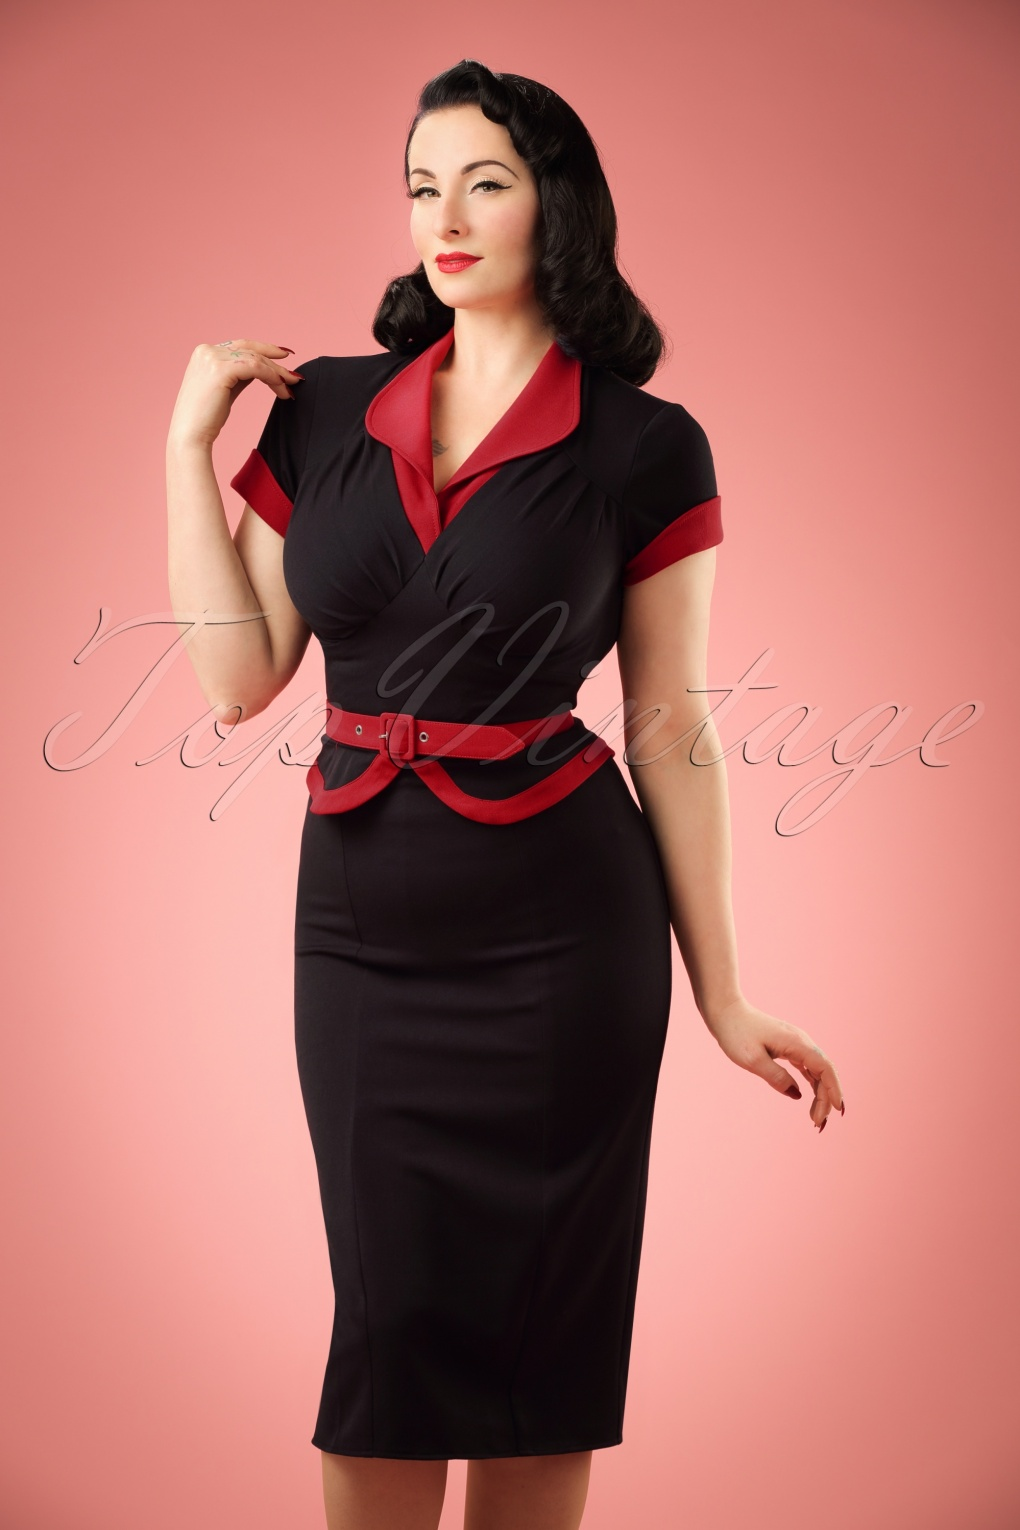 50s Dresses, Pinup Dresses, Swing Dresses TopVintage exclusive  50s Sabine Katalin Pencil Dress in Black and Red £93.00 AT vintagedancer.com